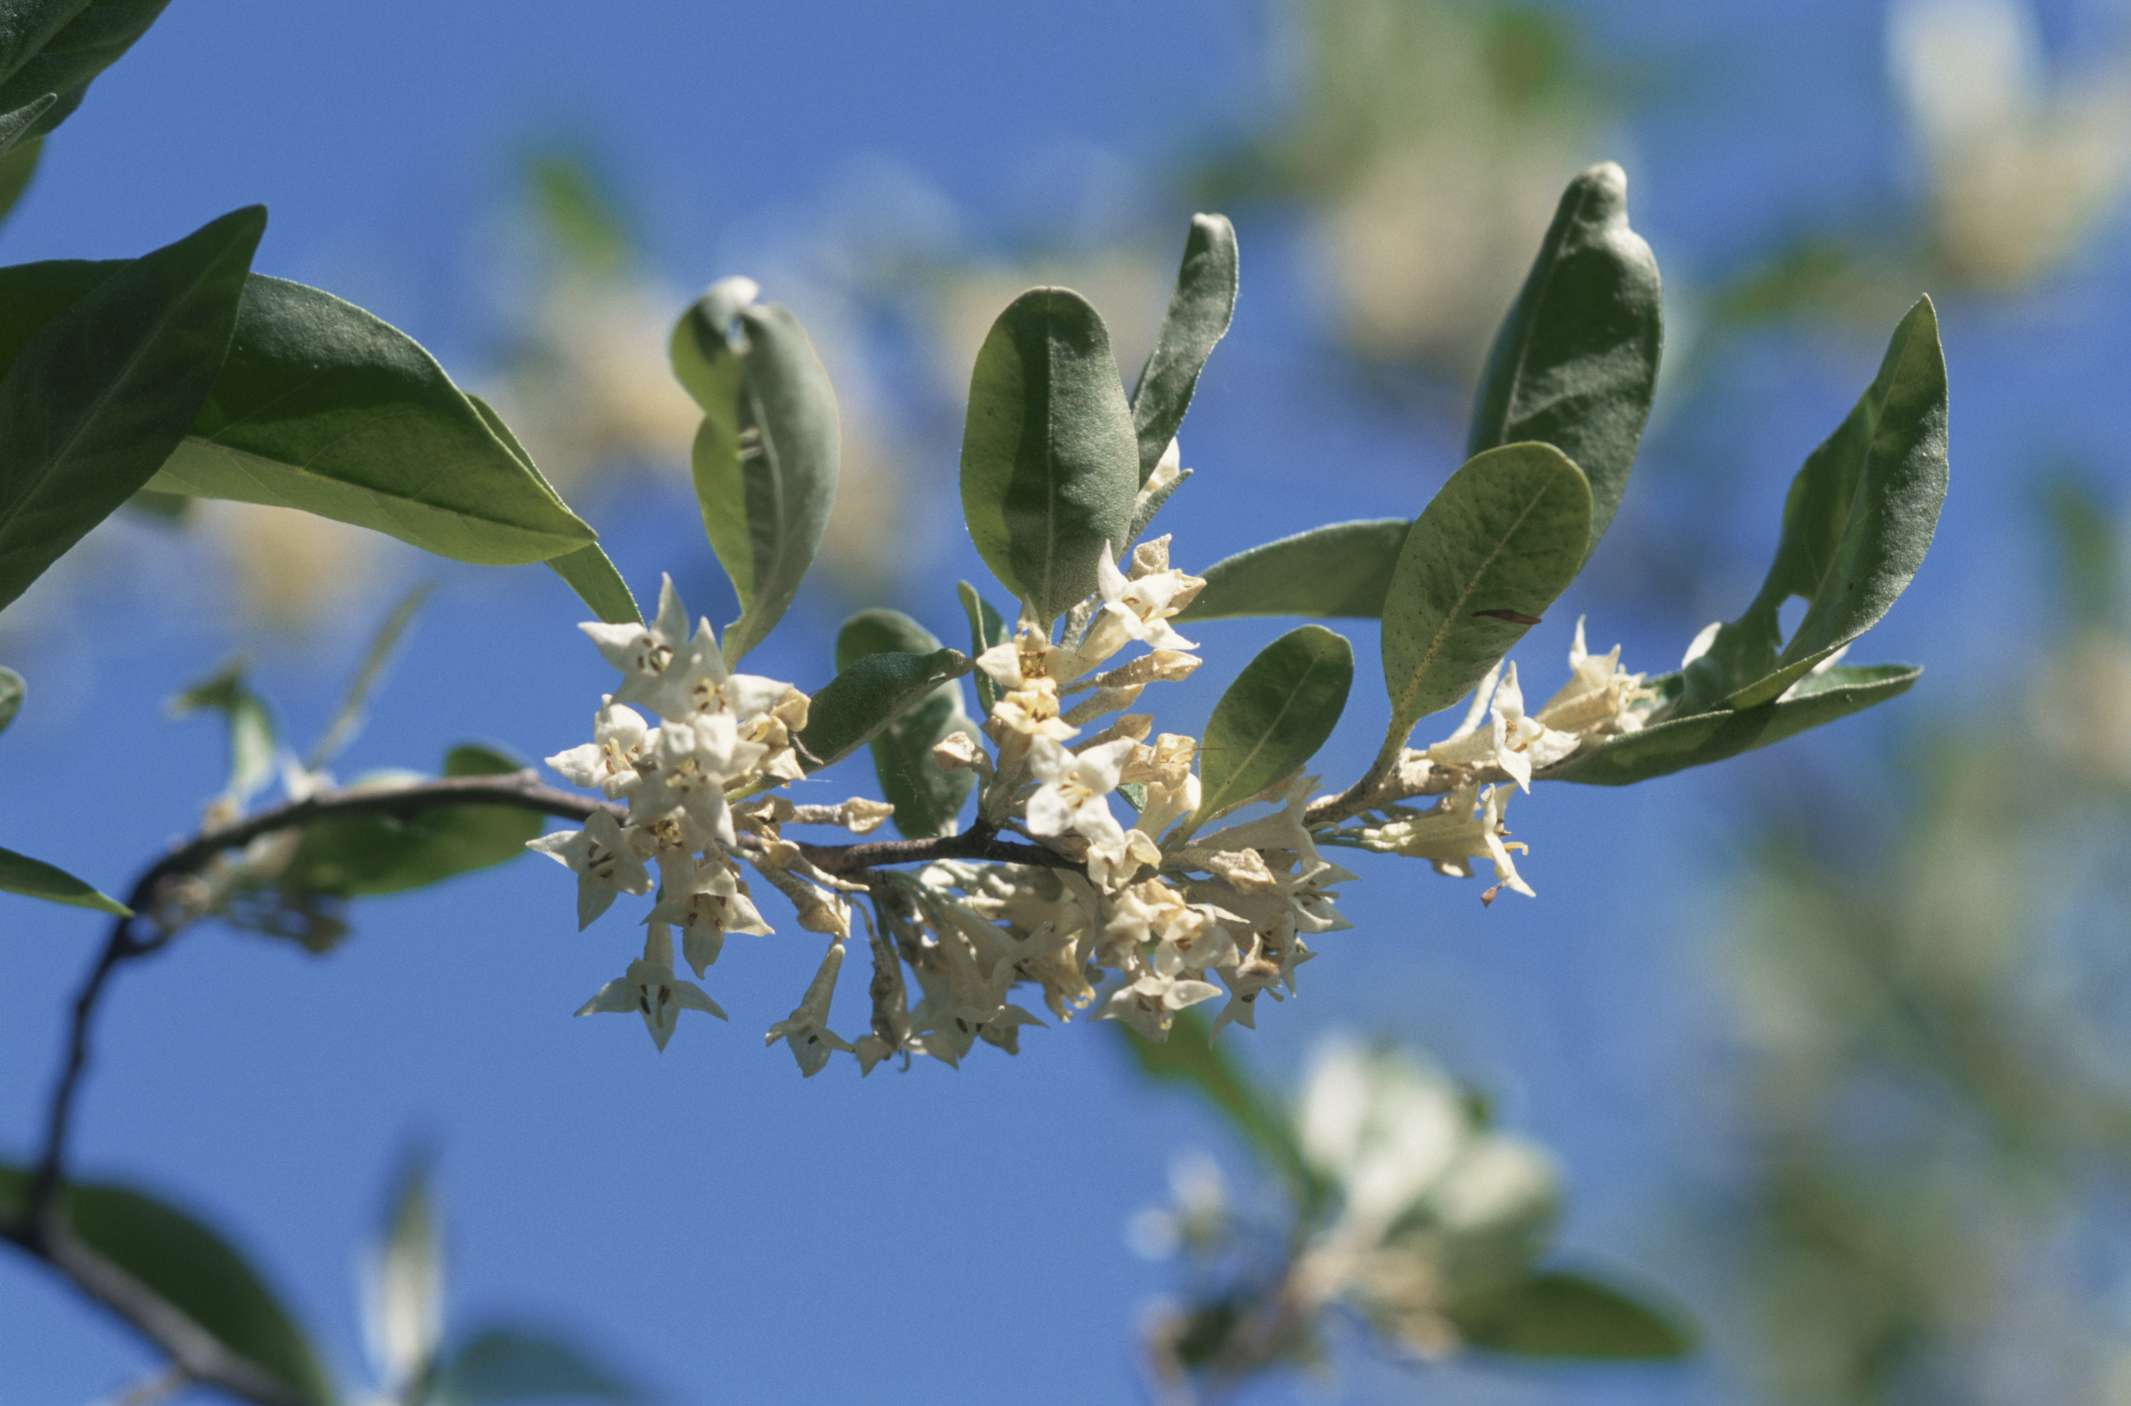 Autumn olive in bloom.